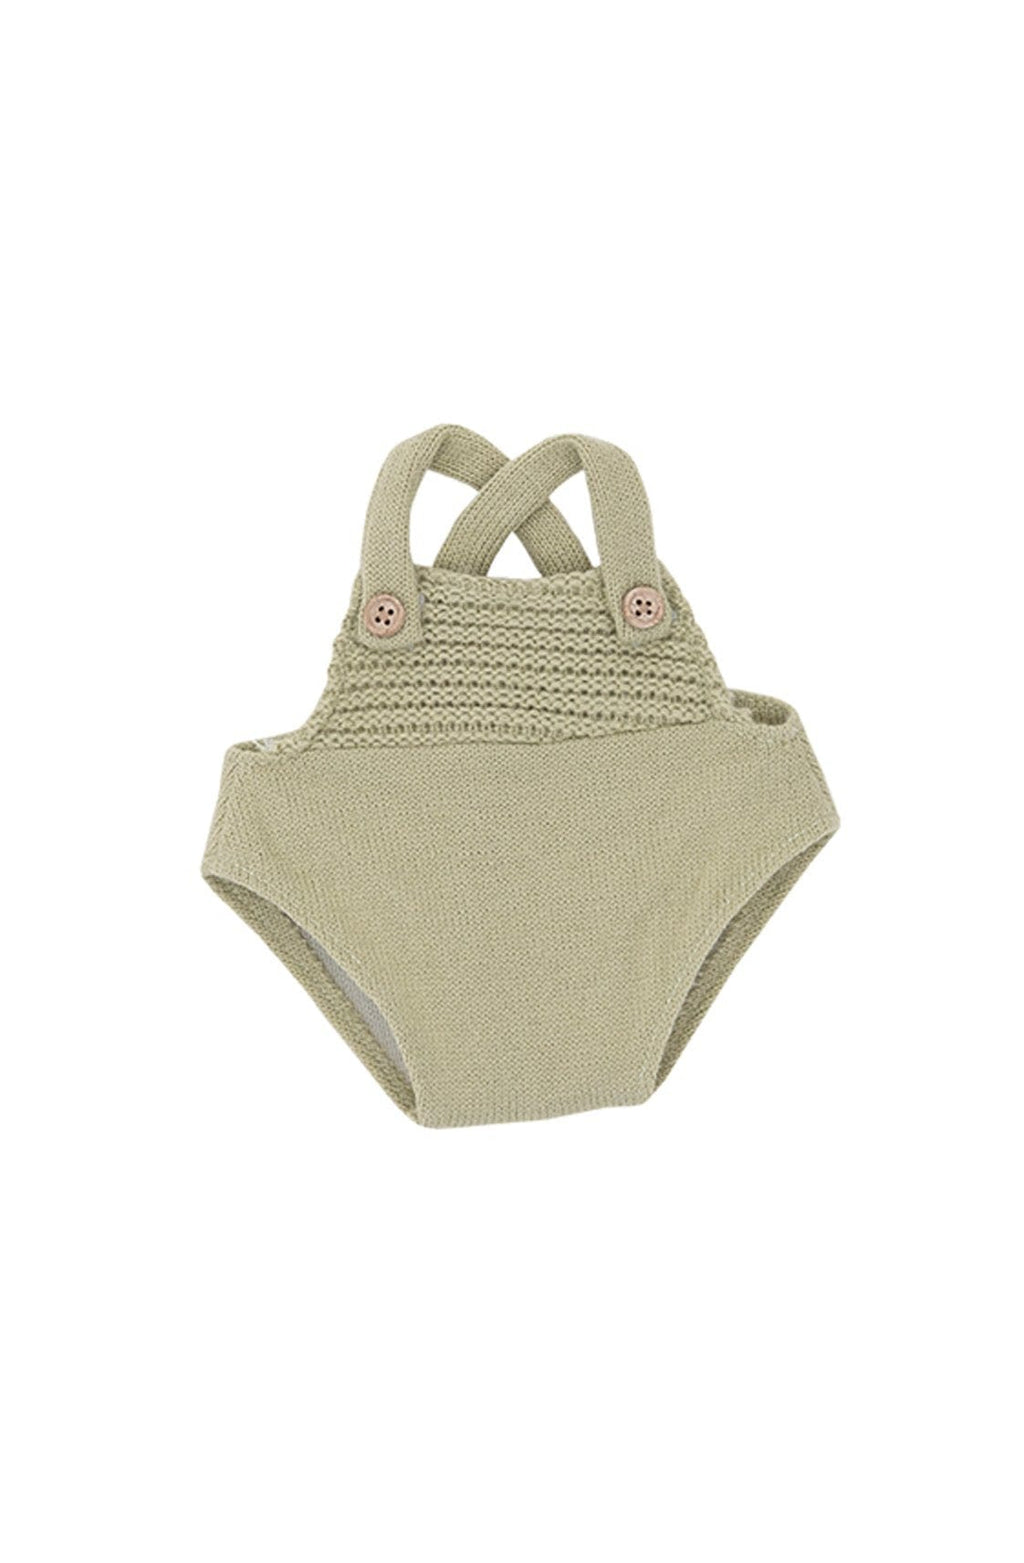 Olli Ella Dinkum Dolls Single Romper, Sage Green - Hello Little Birdie